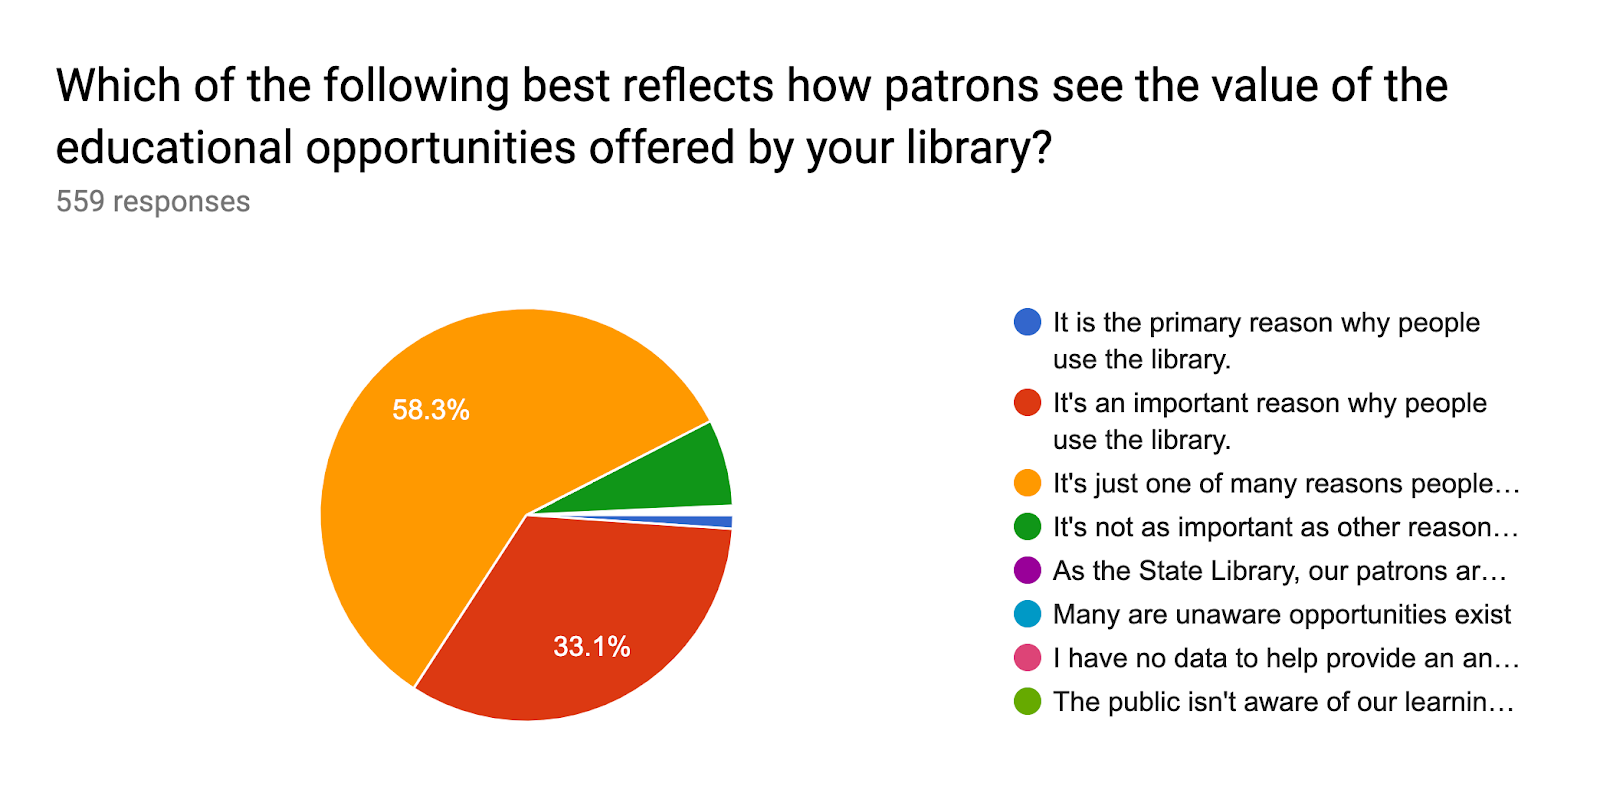 Forms response chart. Question title: Which of the following best reflects how patrons see the value of the educational opportunities offered by your library?. Number of responses: 559 responses.